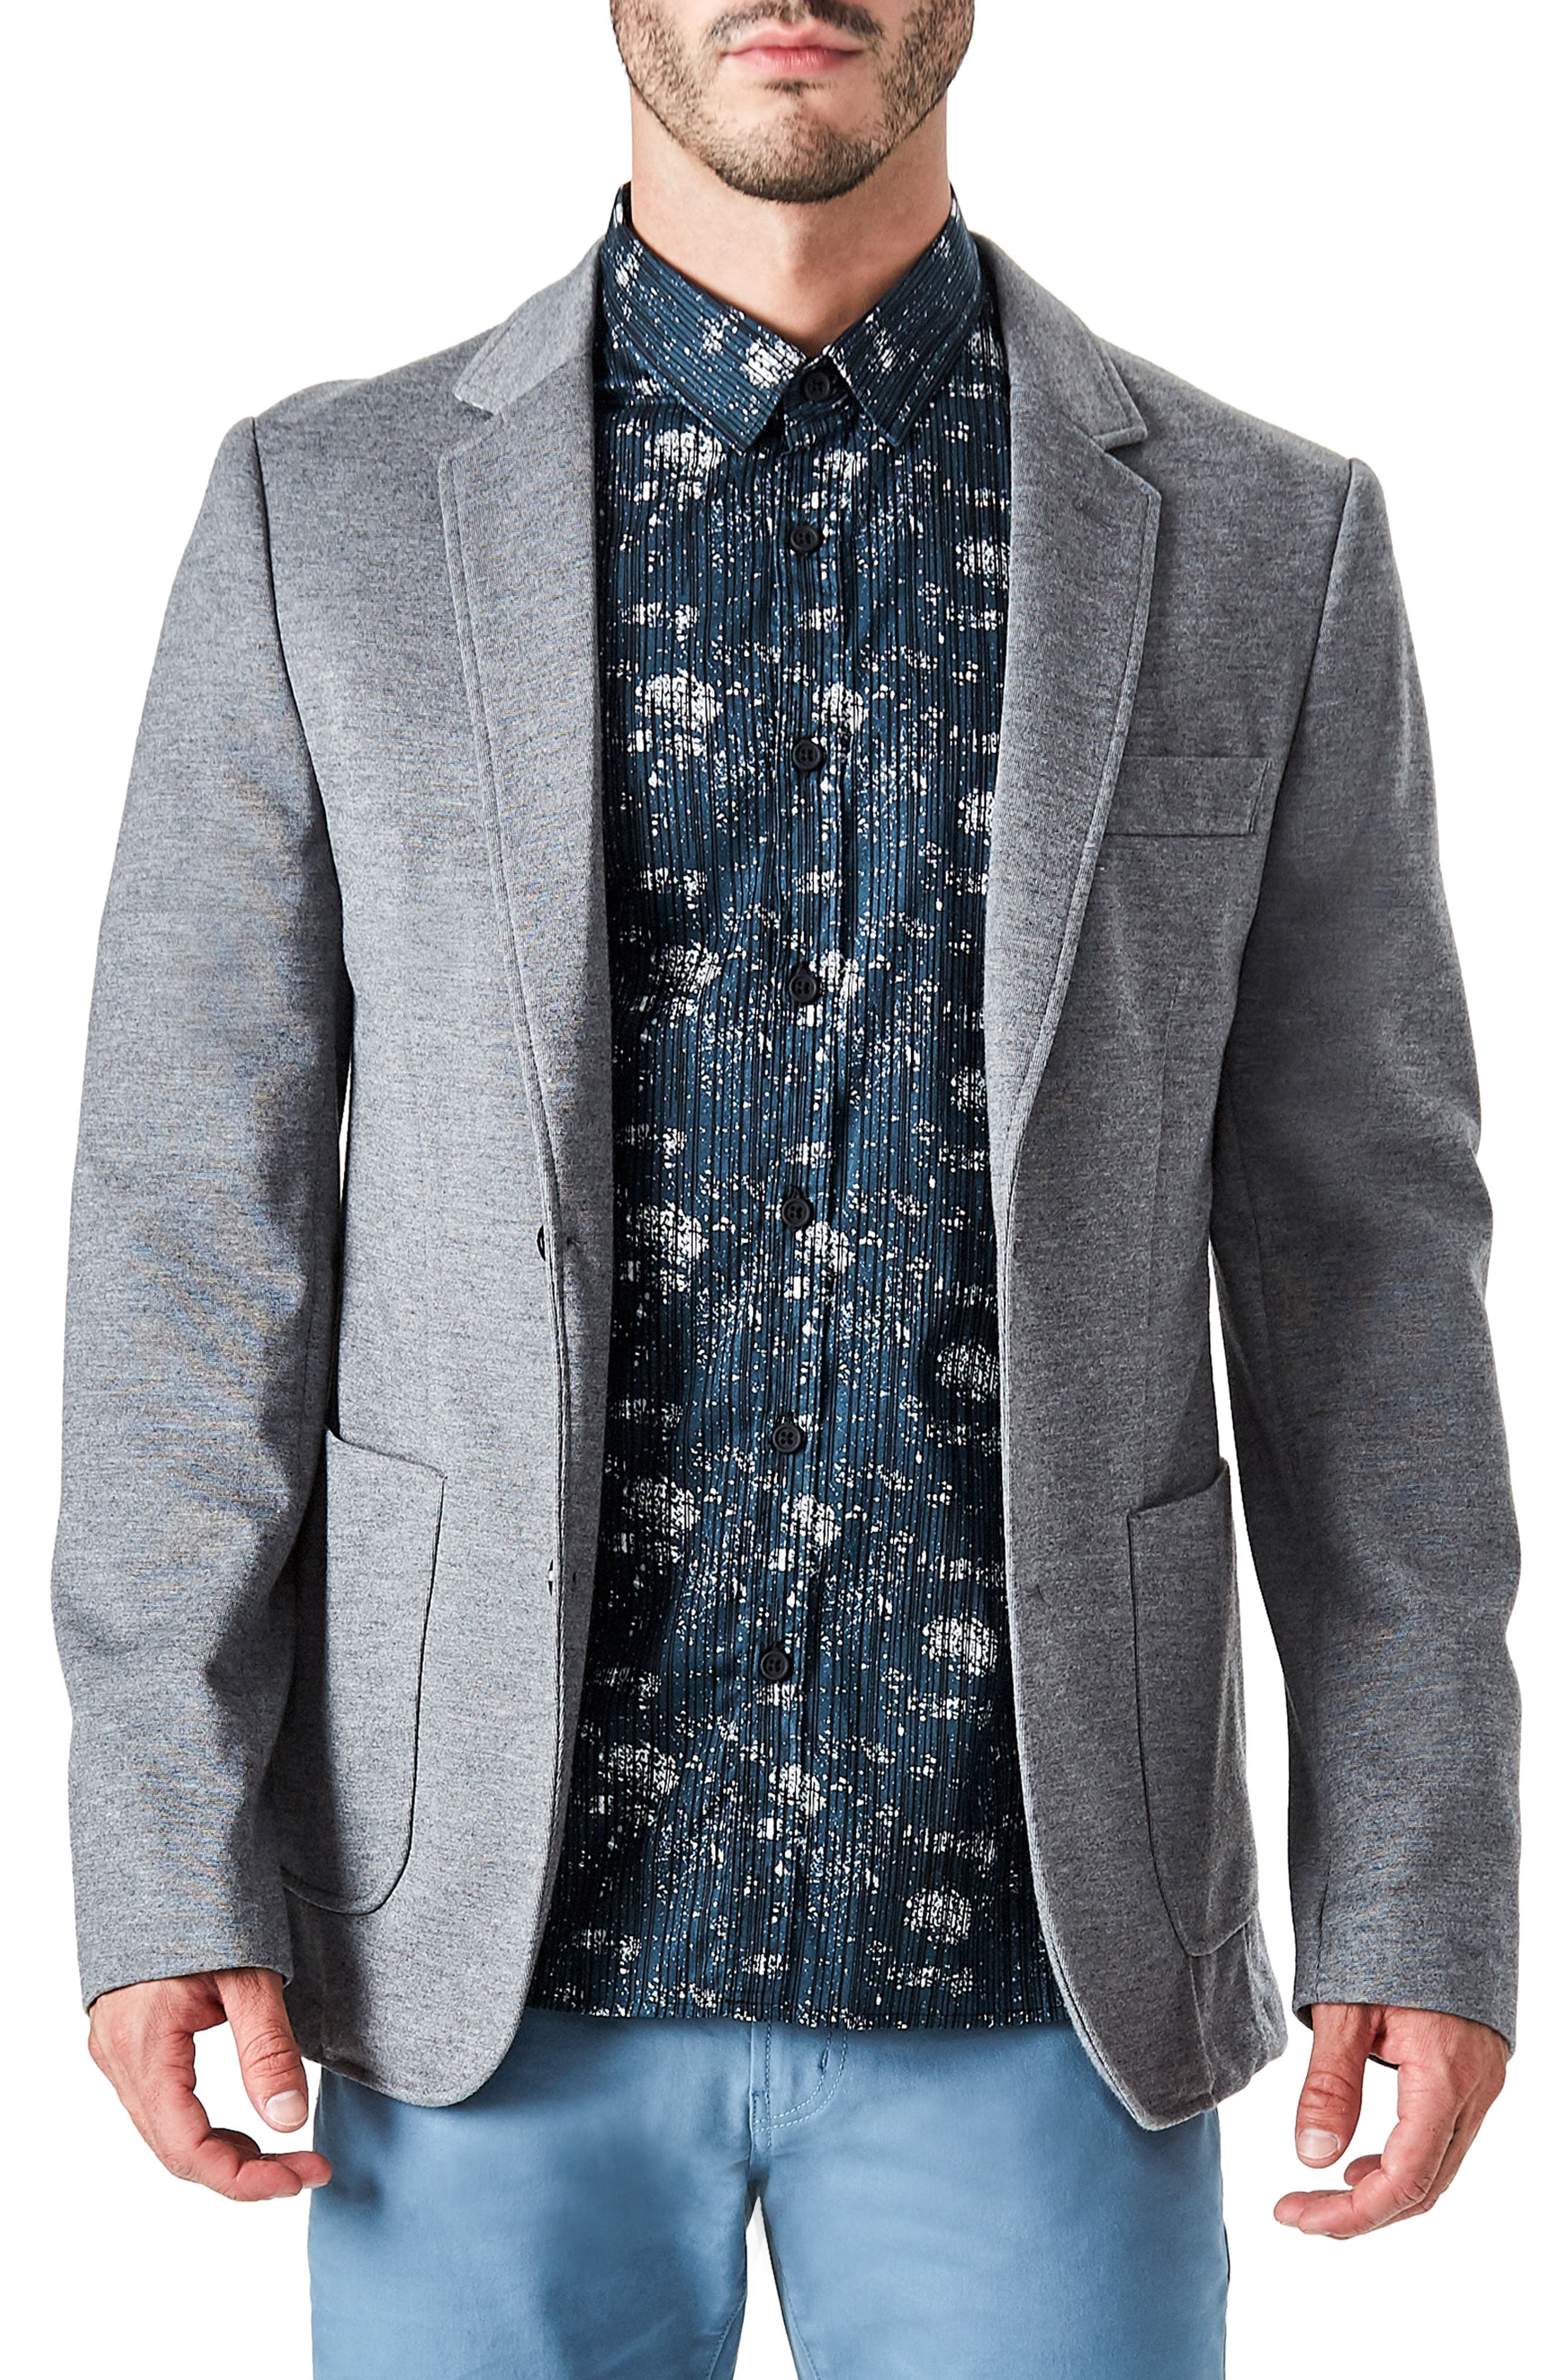 Urbino Casual Blazer,                         Main,                         color, Grey